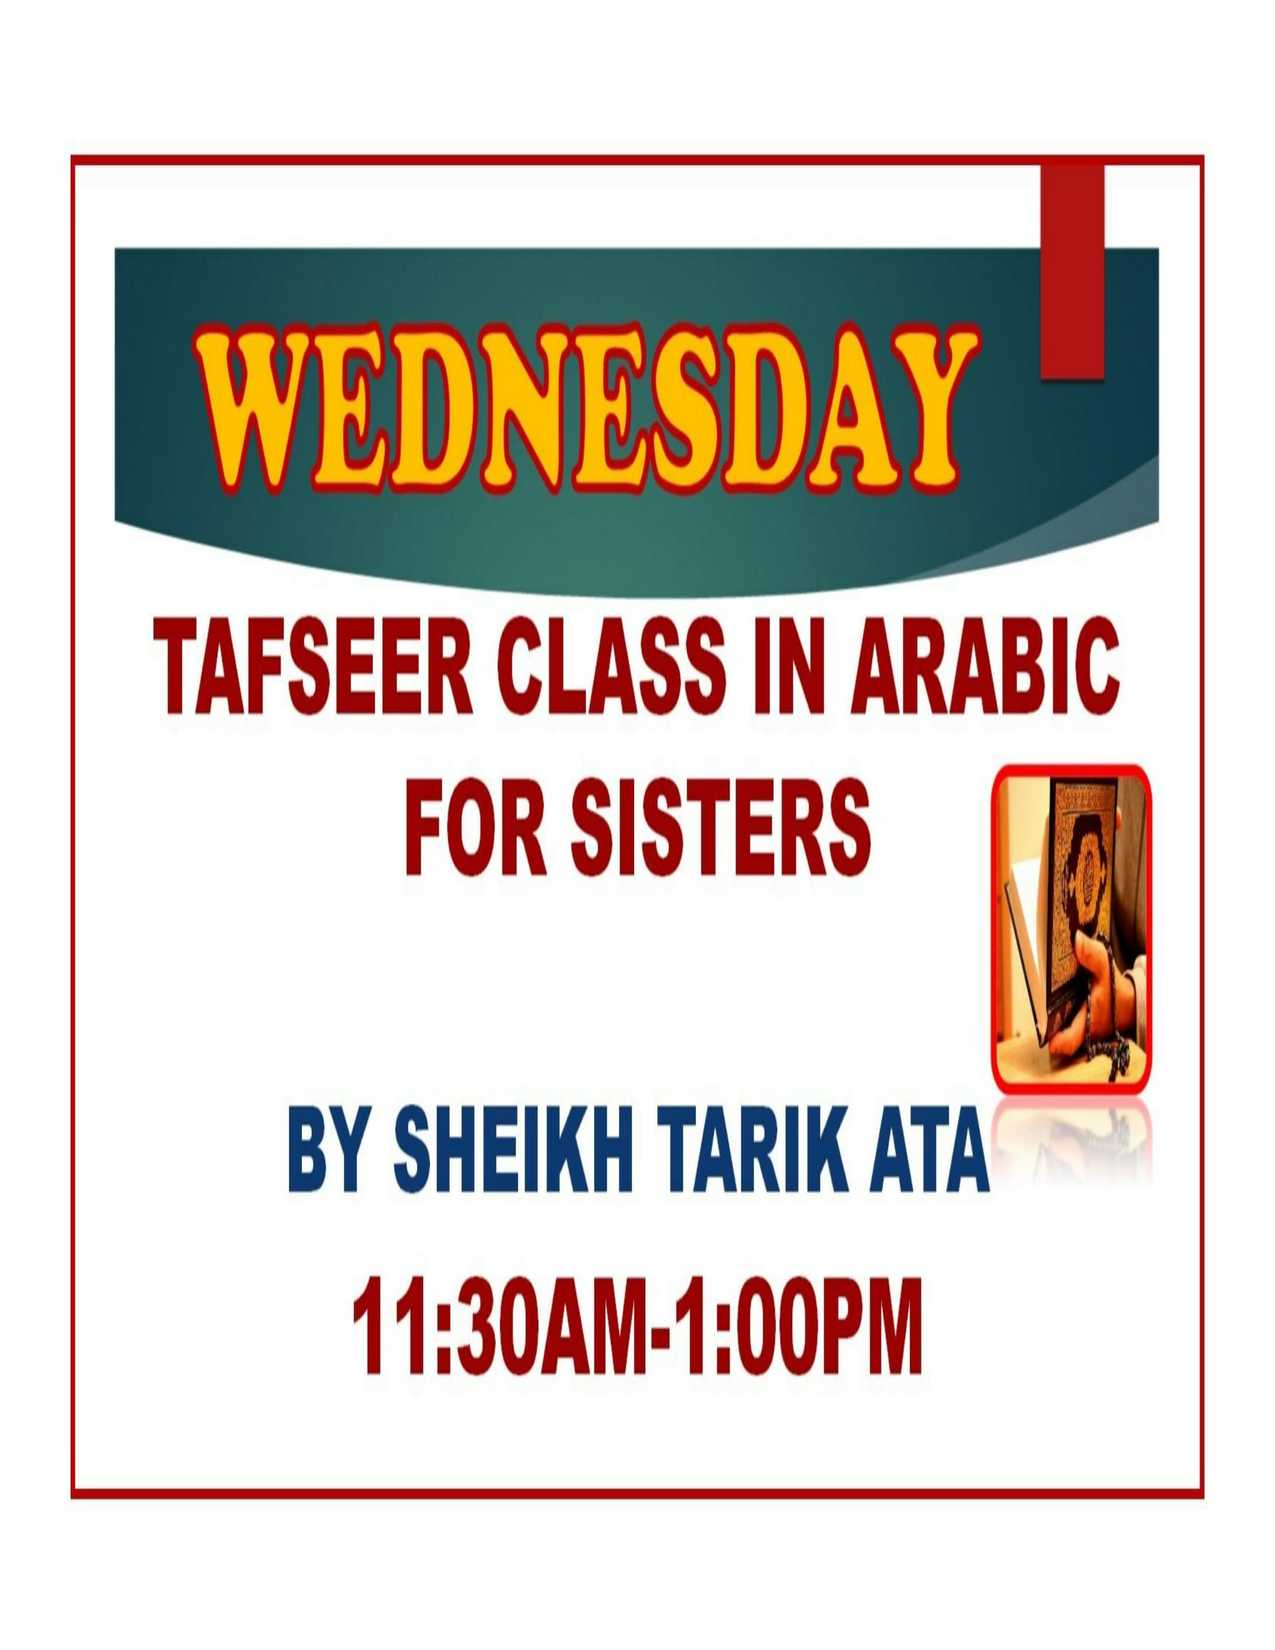 TAFSER CLASS IN ARABIC FOR SISTERS.jpg-1